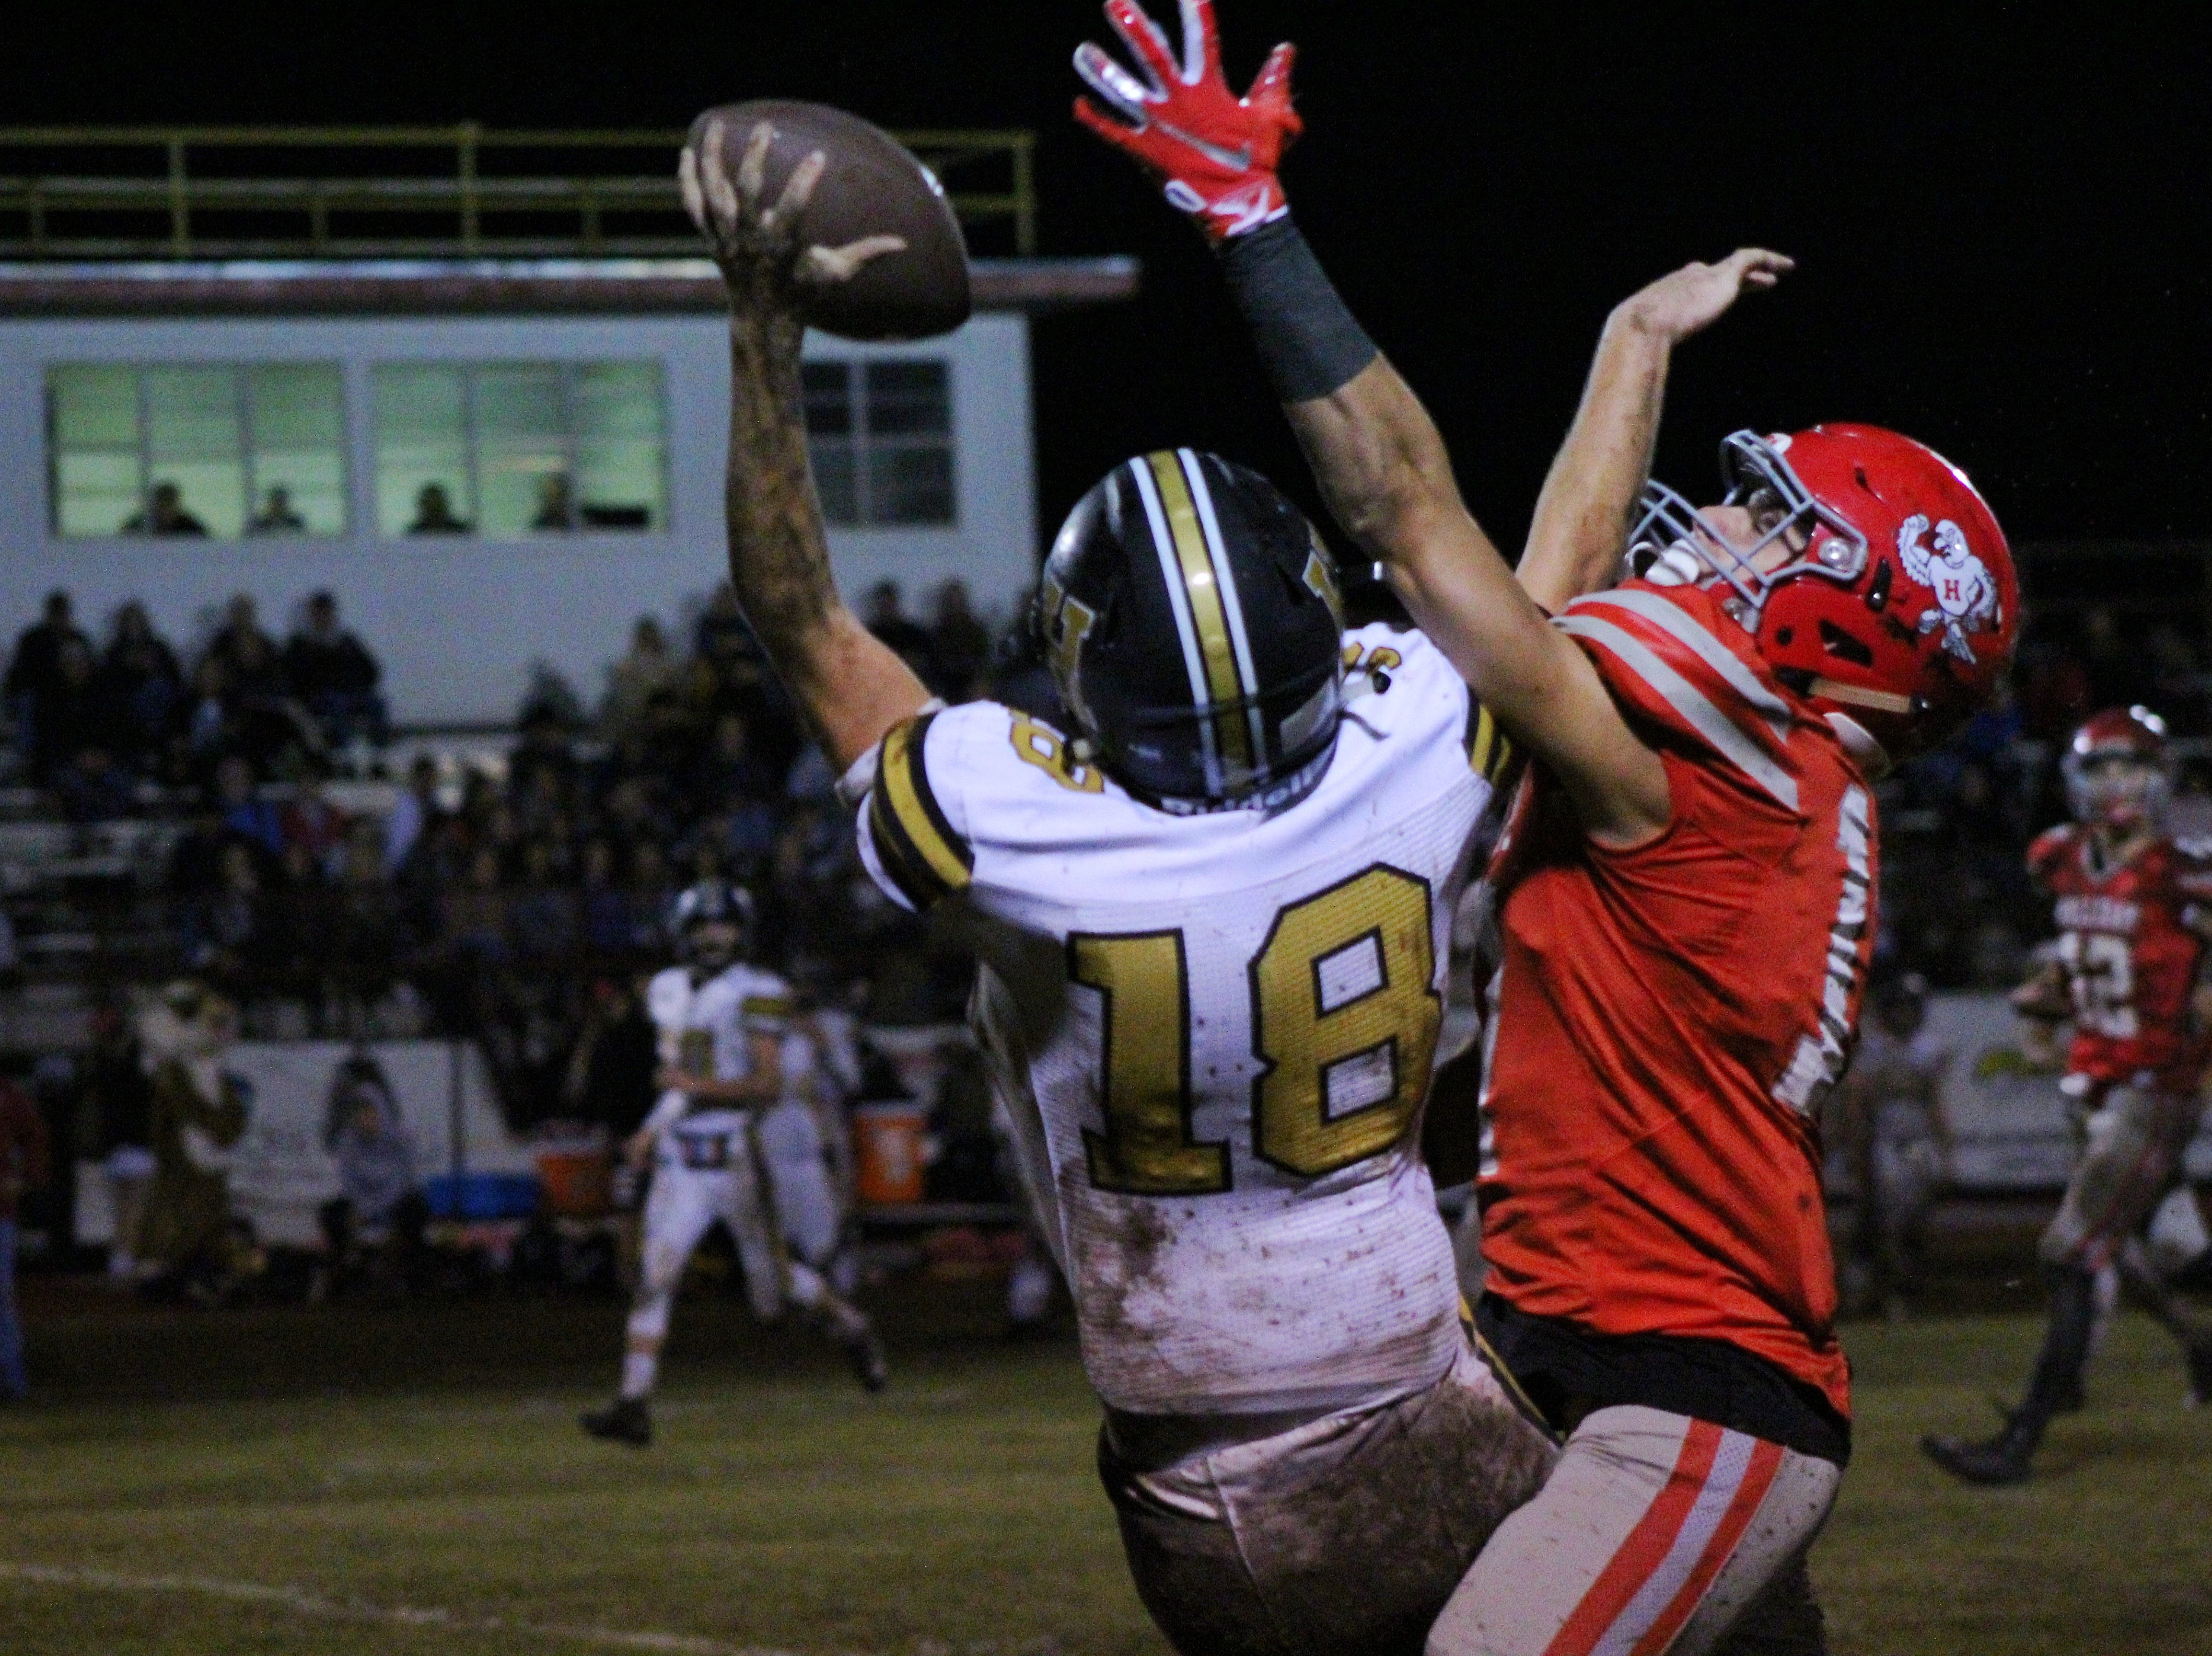 Holliday's Cole Harrison and Henrietta's Weston Dowell battle for a pass. Both teams emphasized rushing rather than passing tonight at the slippery grass stadium in Holliday.